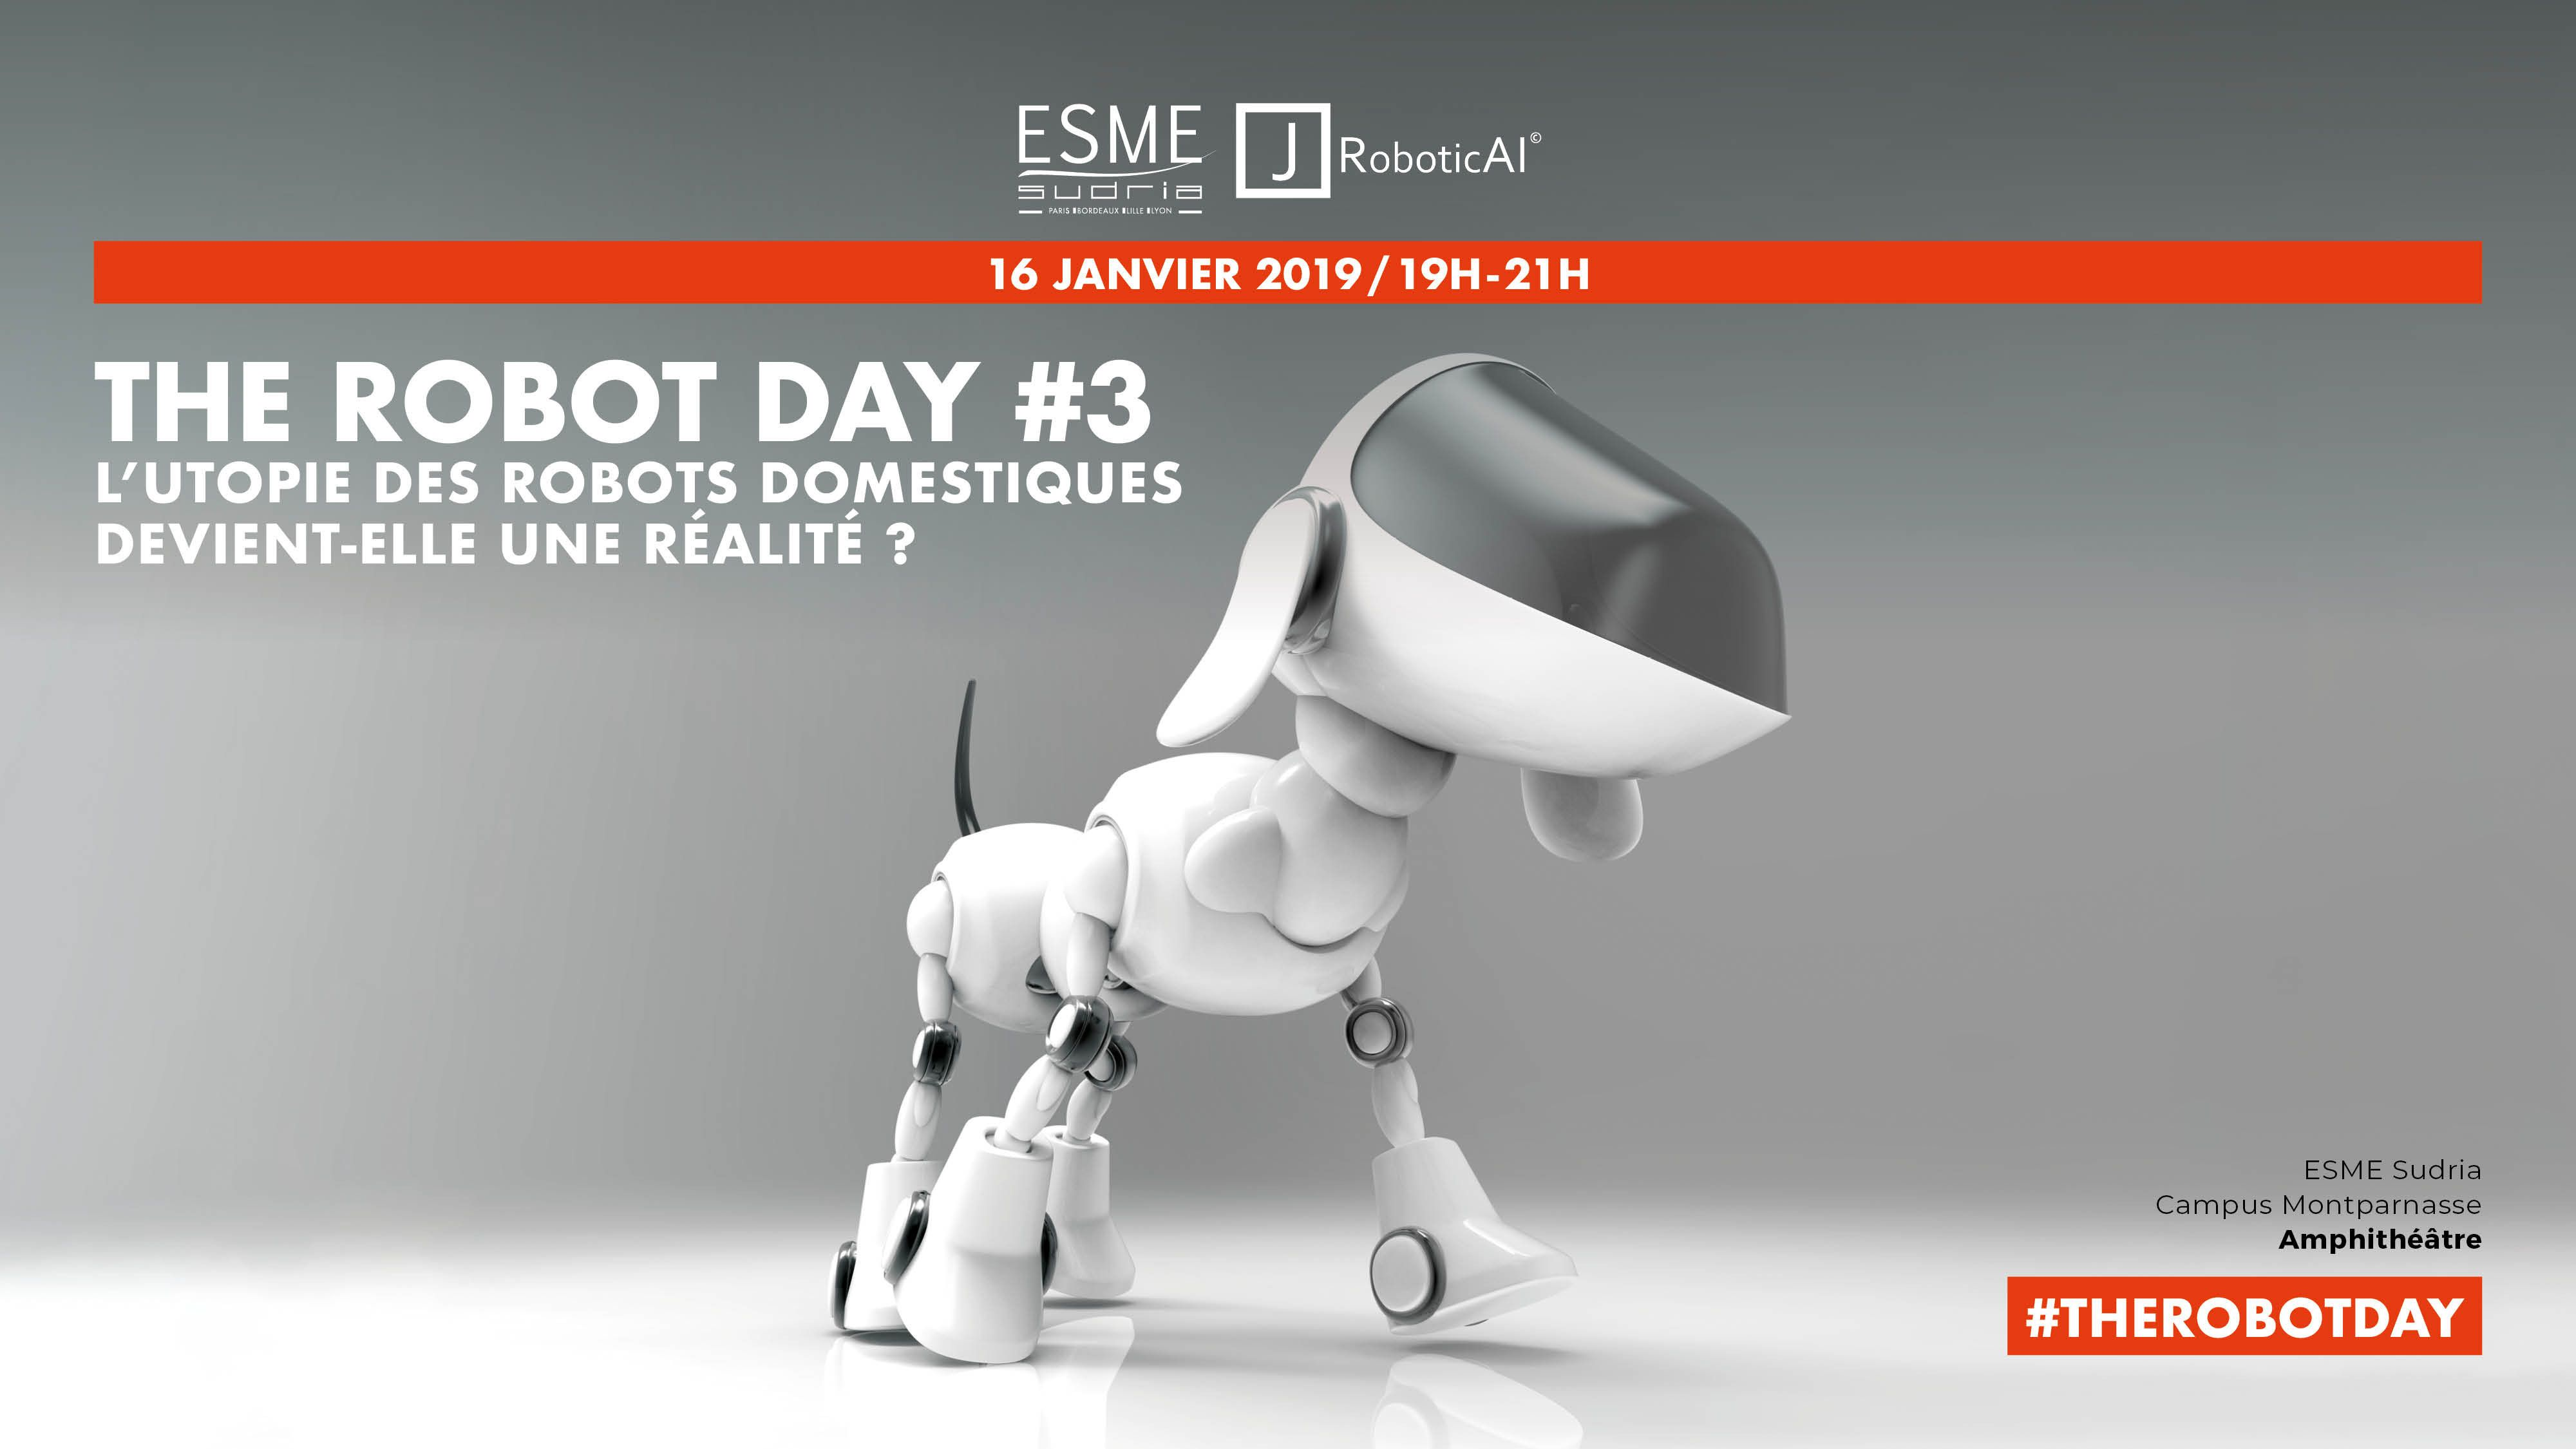 The Robot Day